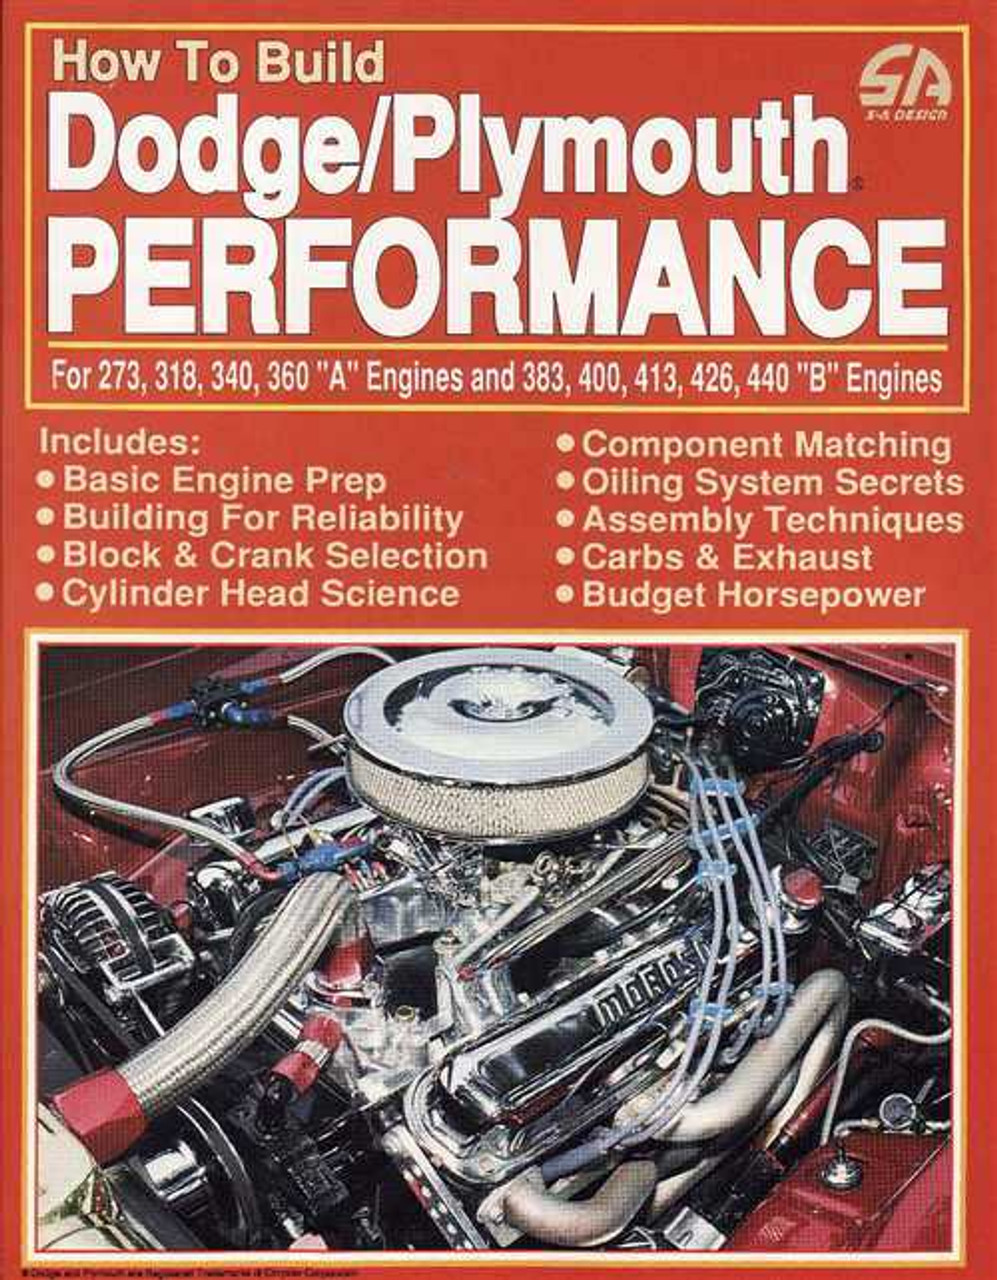 How To Build Dodge / Plymouth Performance